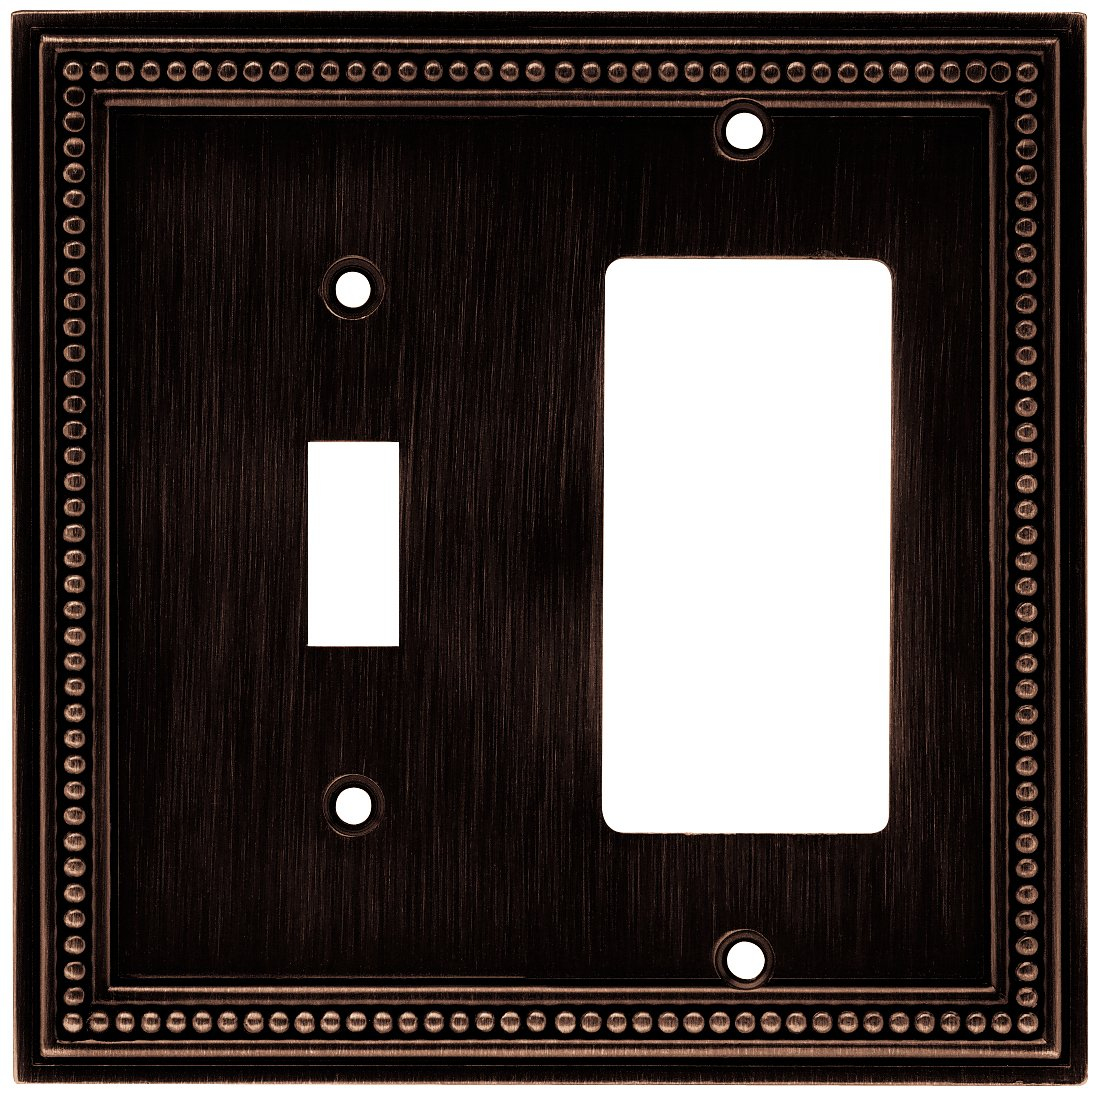 Brainerd 64407 Beaded Single Toggle Switch/Decorator Wall Plate / Switch Plate / Cover, Venetian Bronze